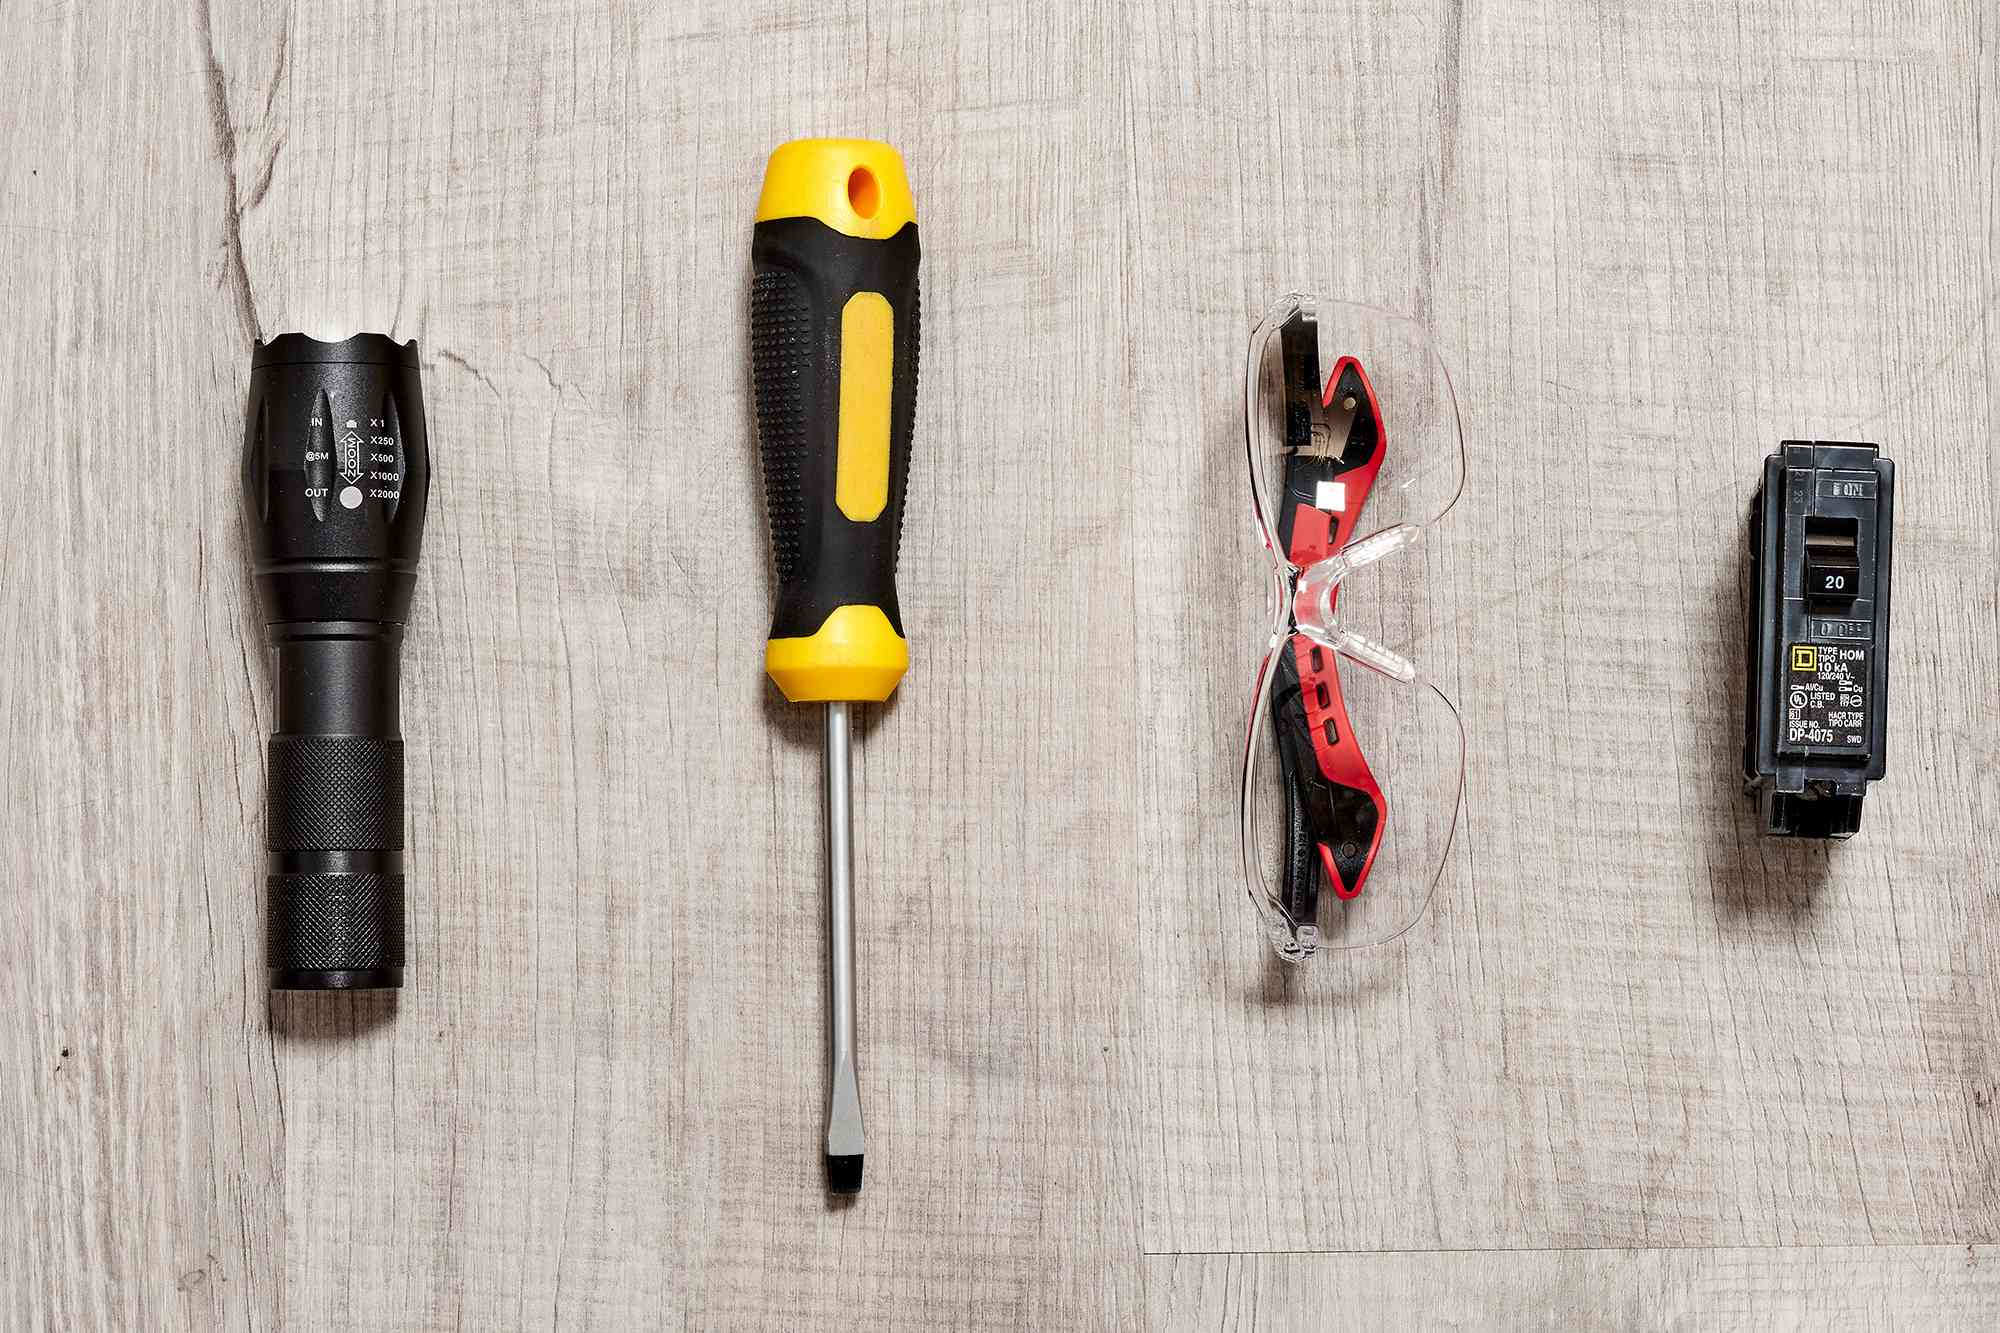 Flashlight, screwdriver, safety glasses and new circuit breaker for replacing